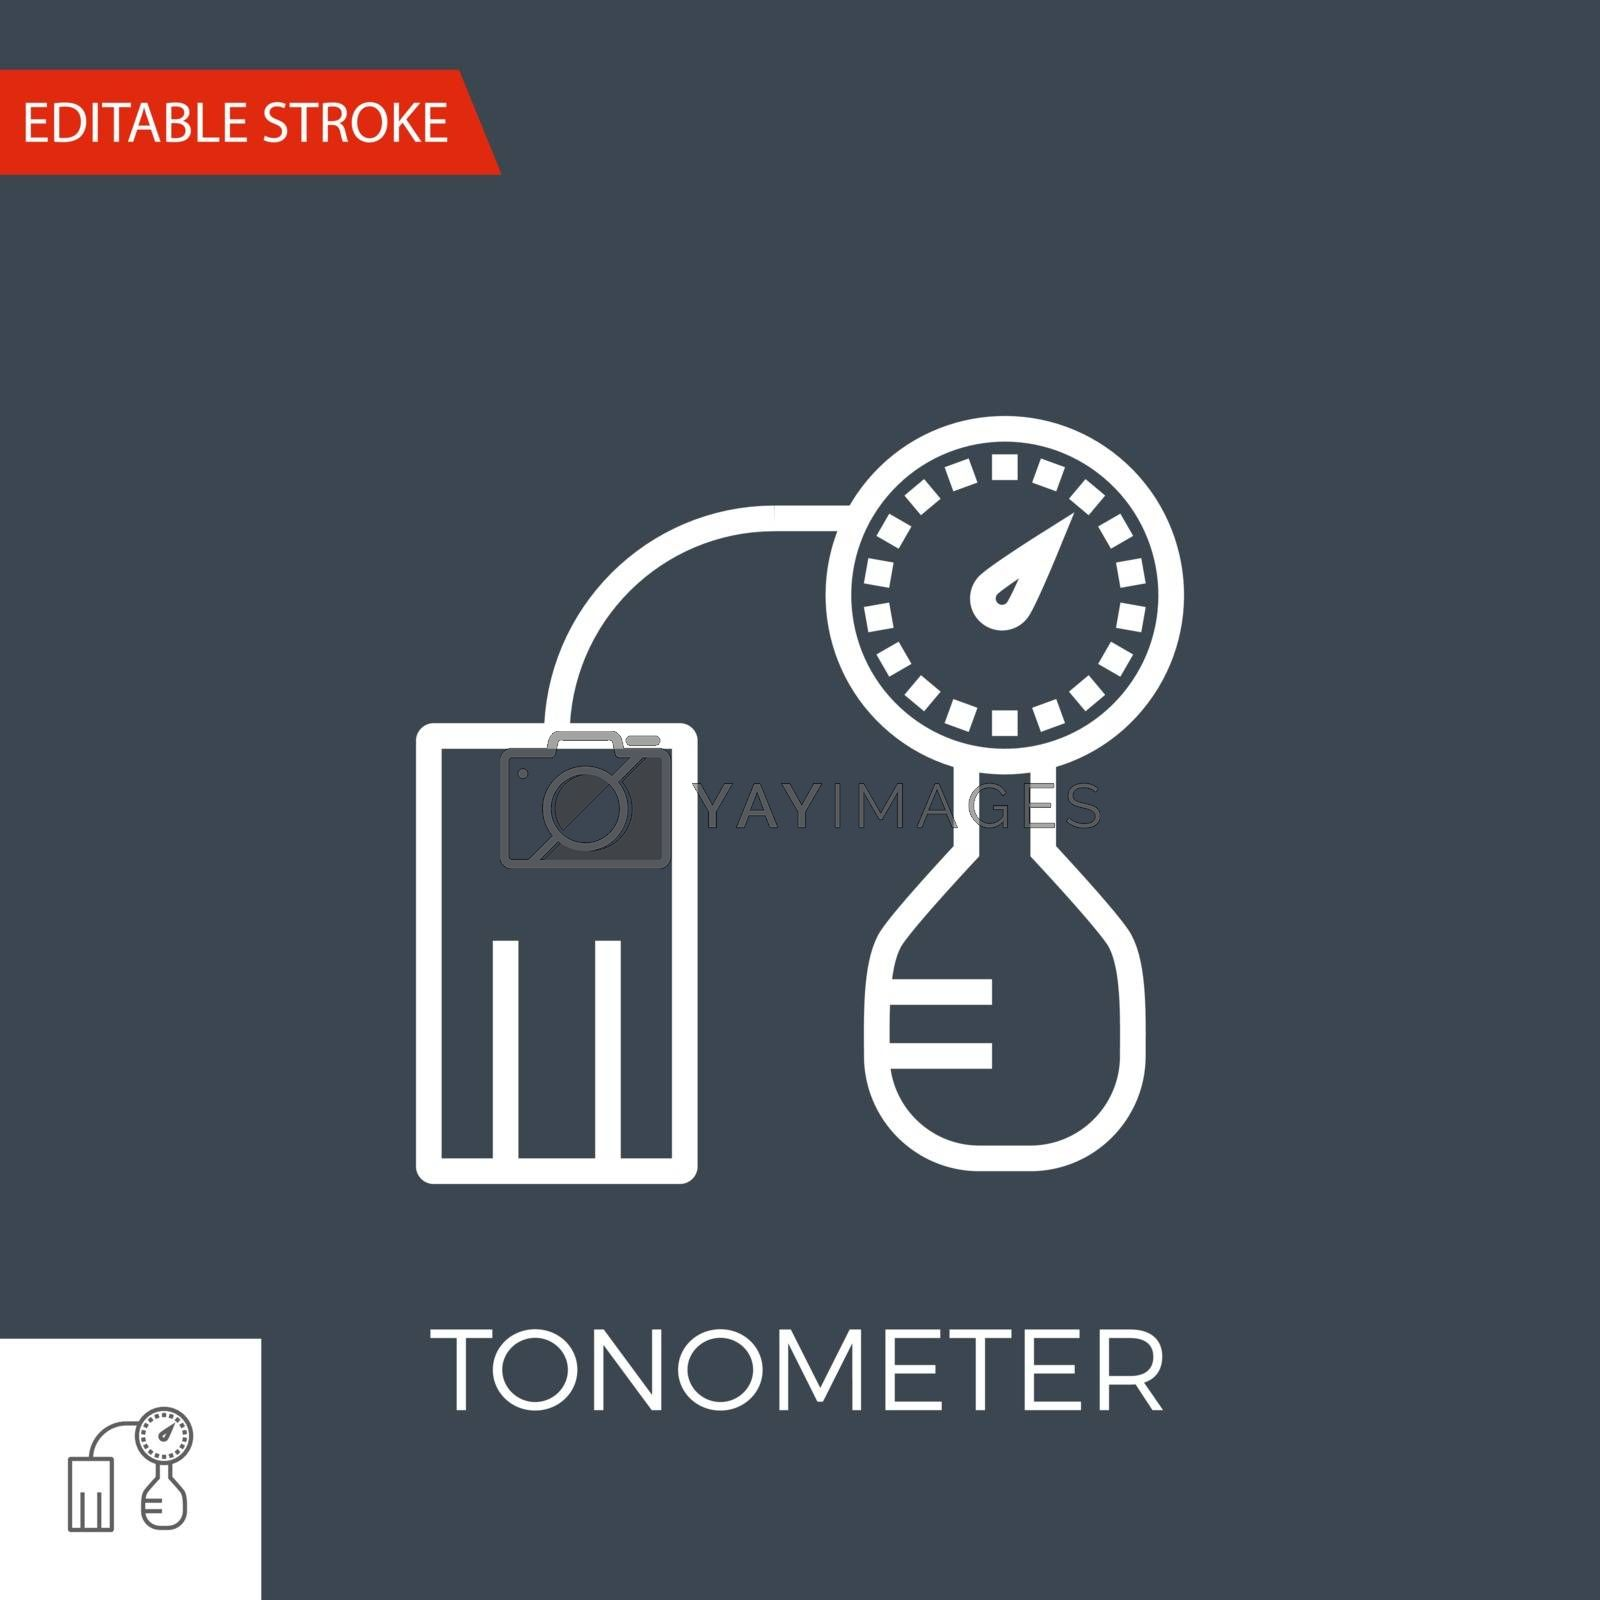 Tonometer Thin Line Vector Icon. Flat Icon Isolated on the Black Background. Editable Stroke EPS file. Vector illustration.